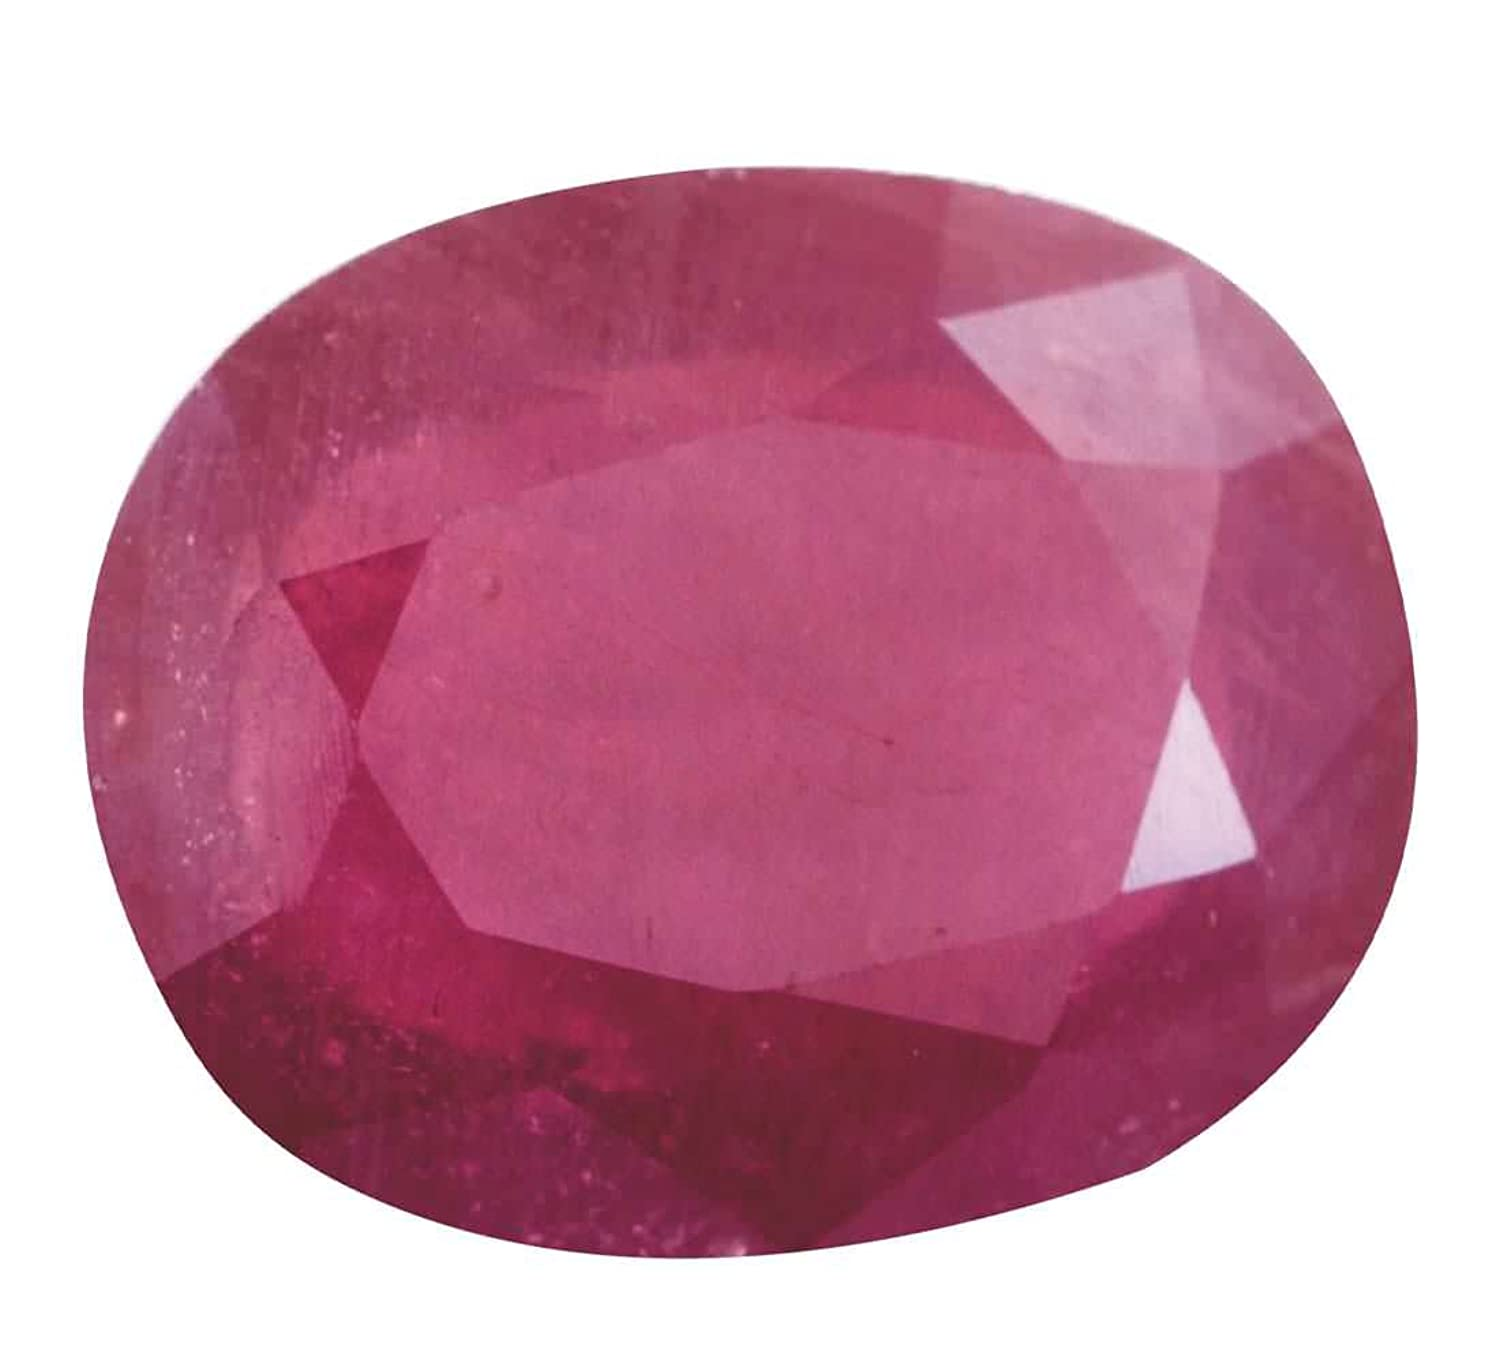 rarity society gem corundum value sapphire and origin understanding international ruby gemstone identifying article